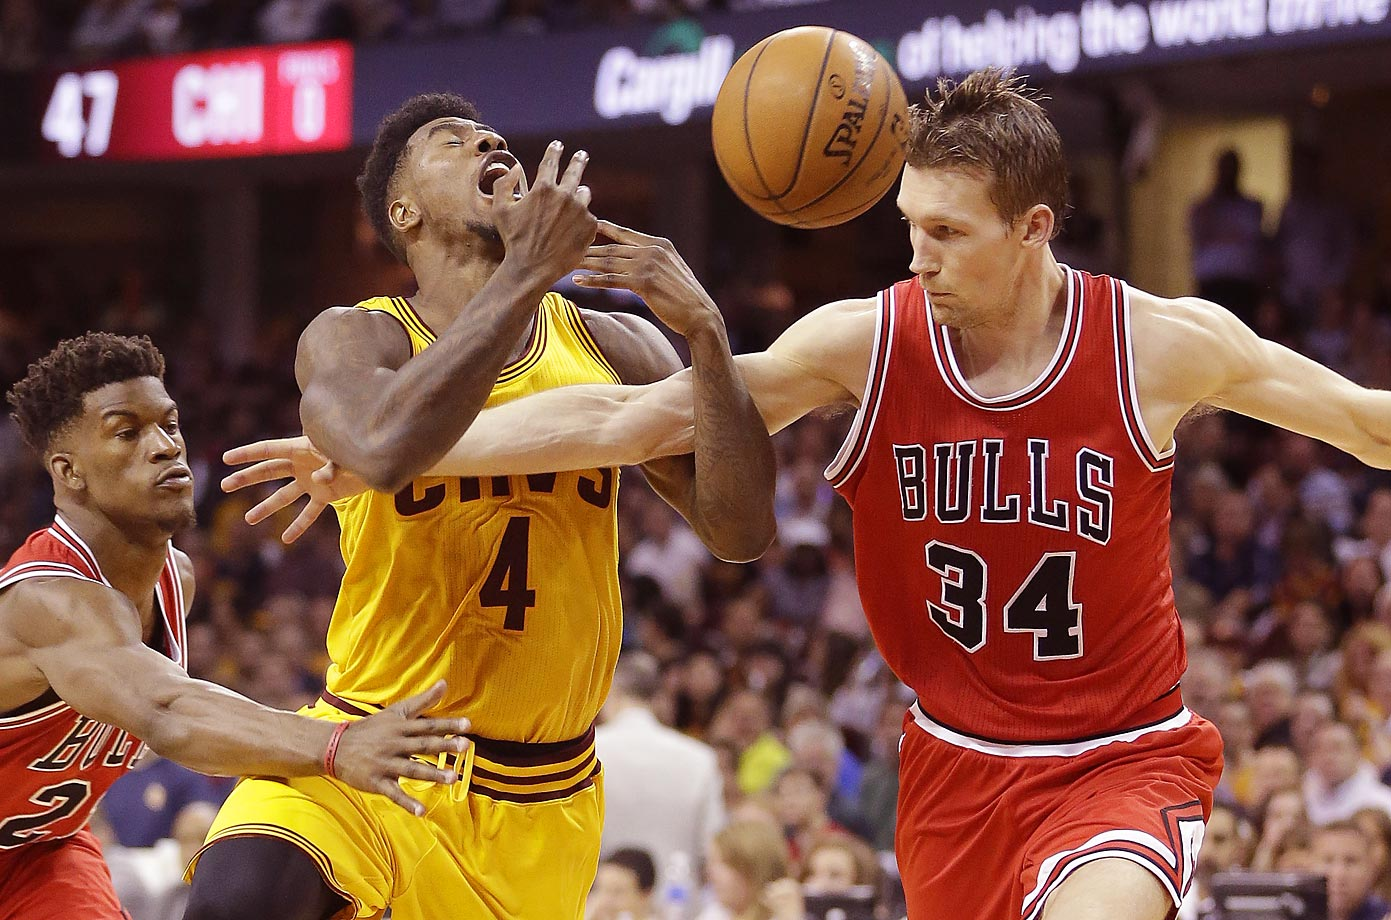 Cavaliers' Iman Shumpert and Bulls' Jimmy Butler and Mike Dunleavy.